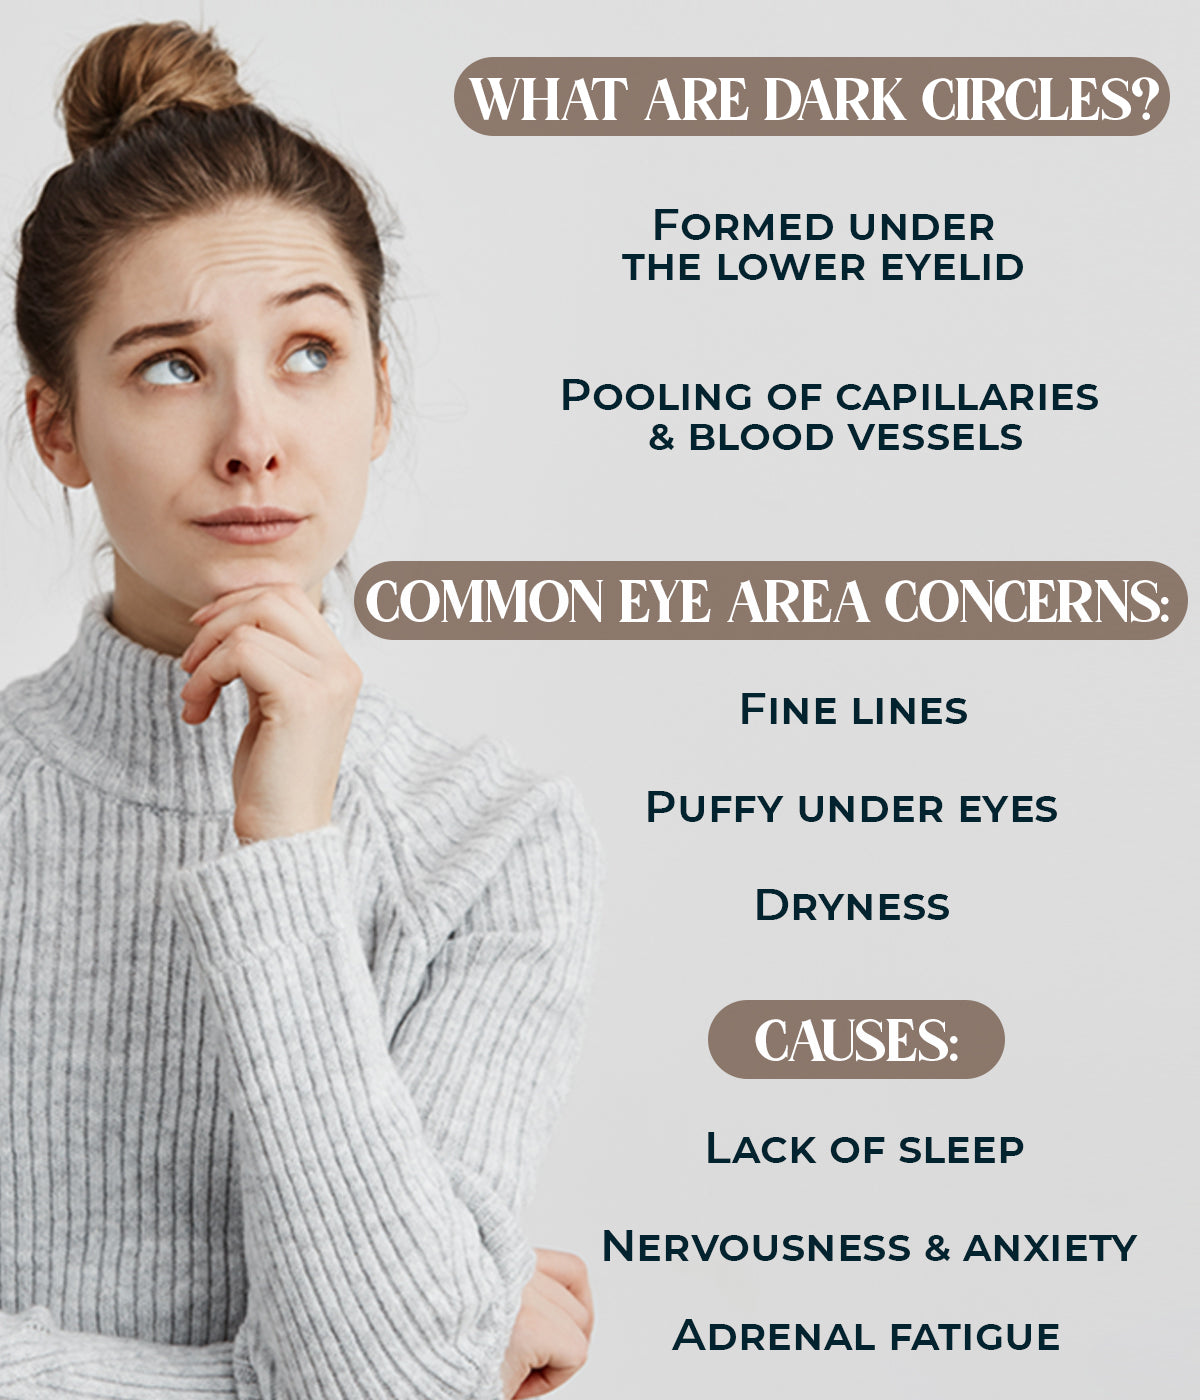 This is an image of what are dark circles and other common eye area concerns